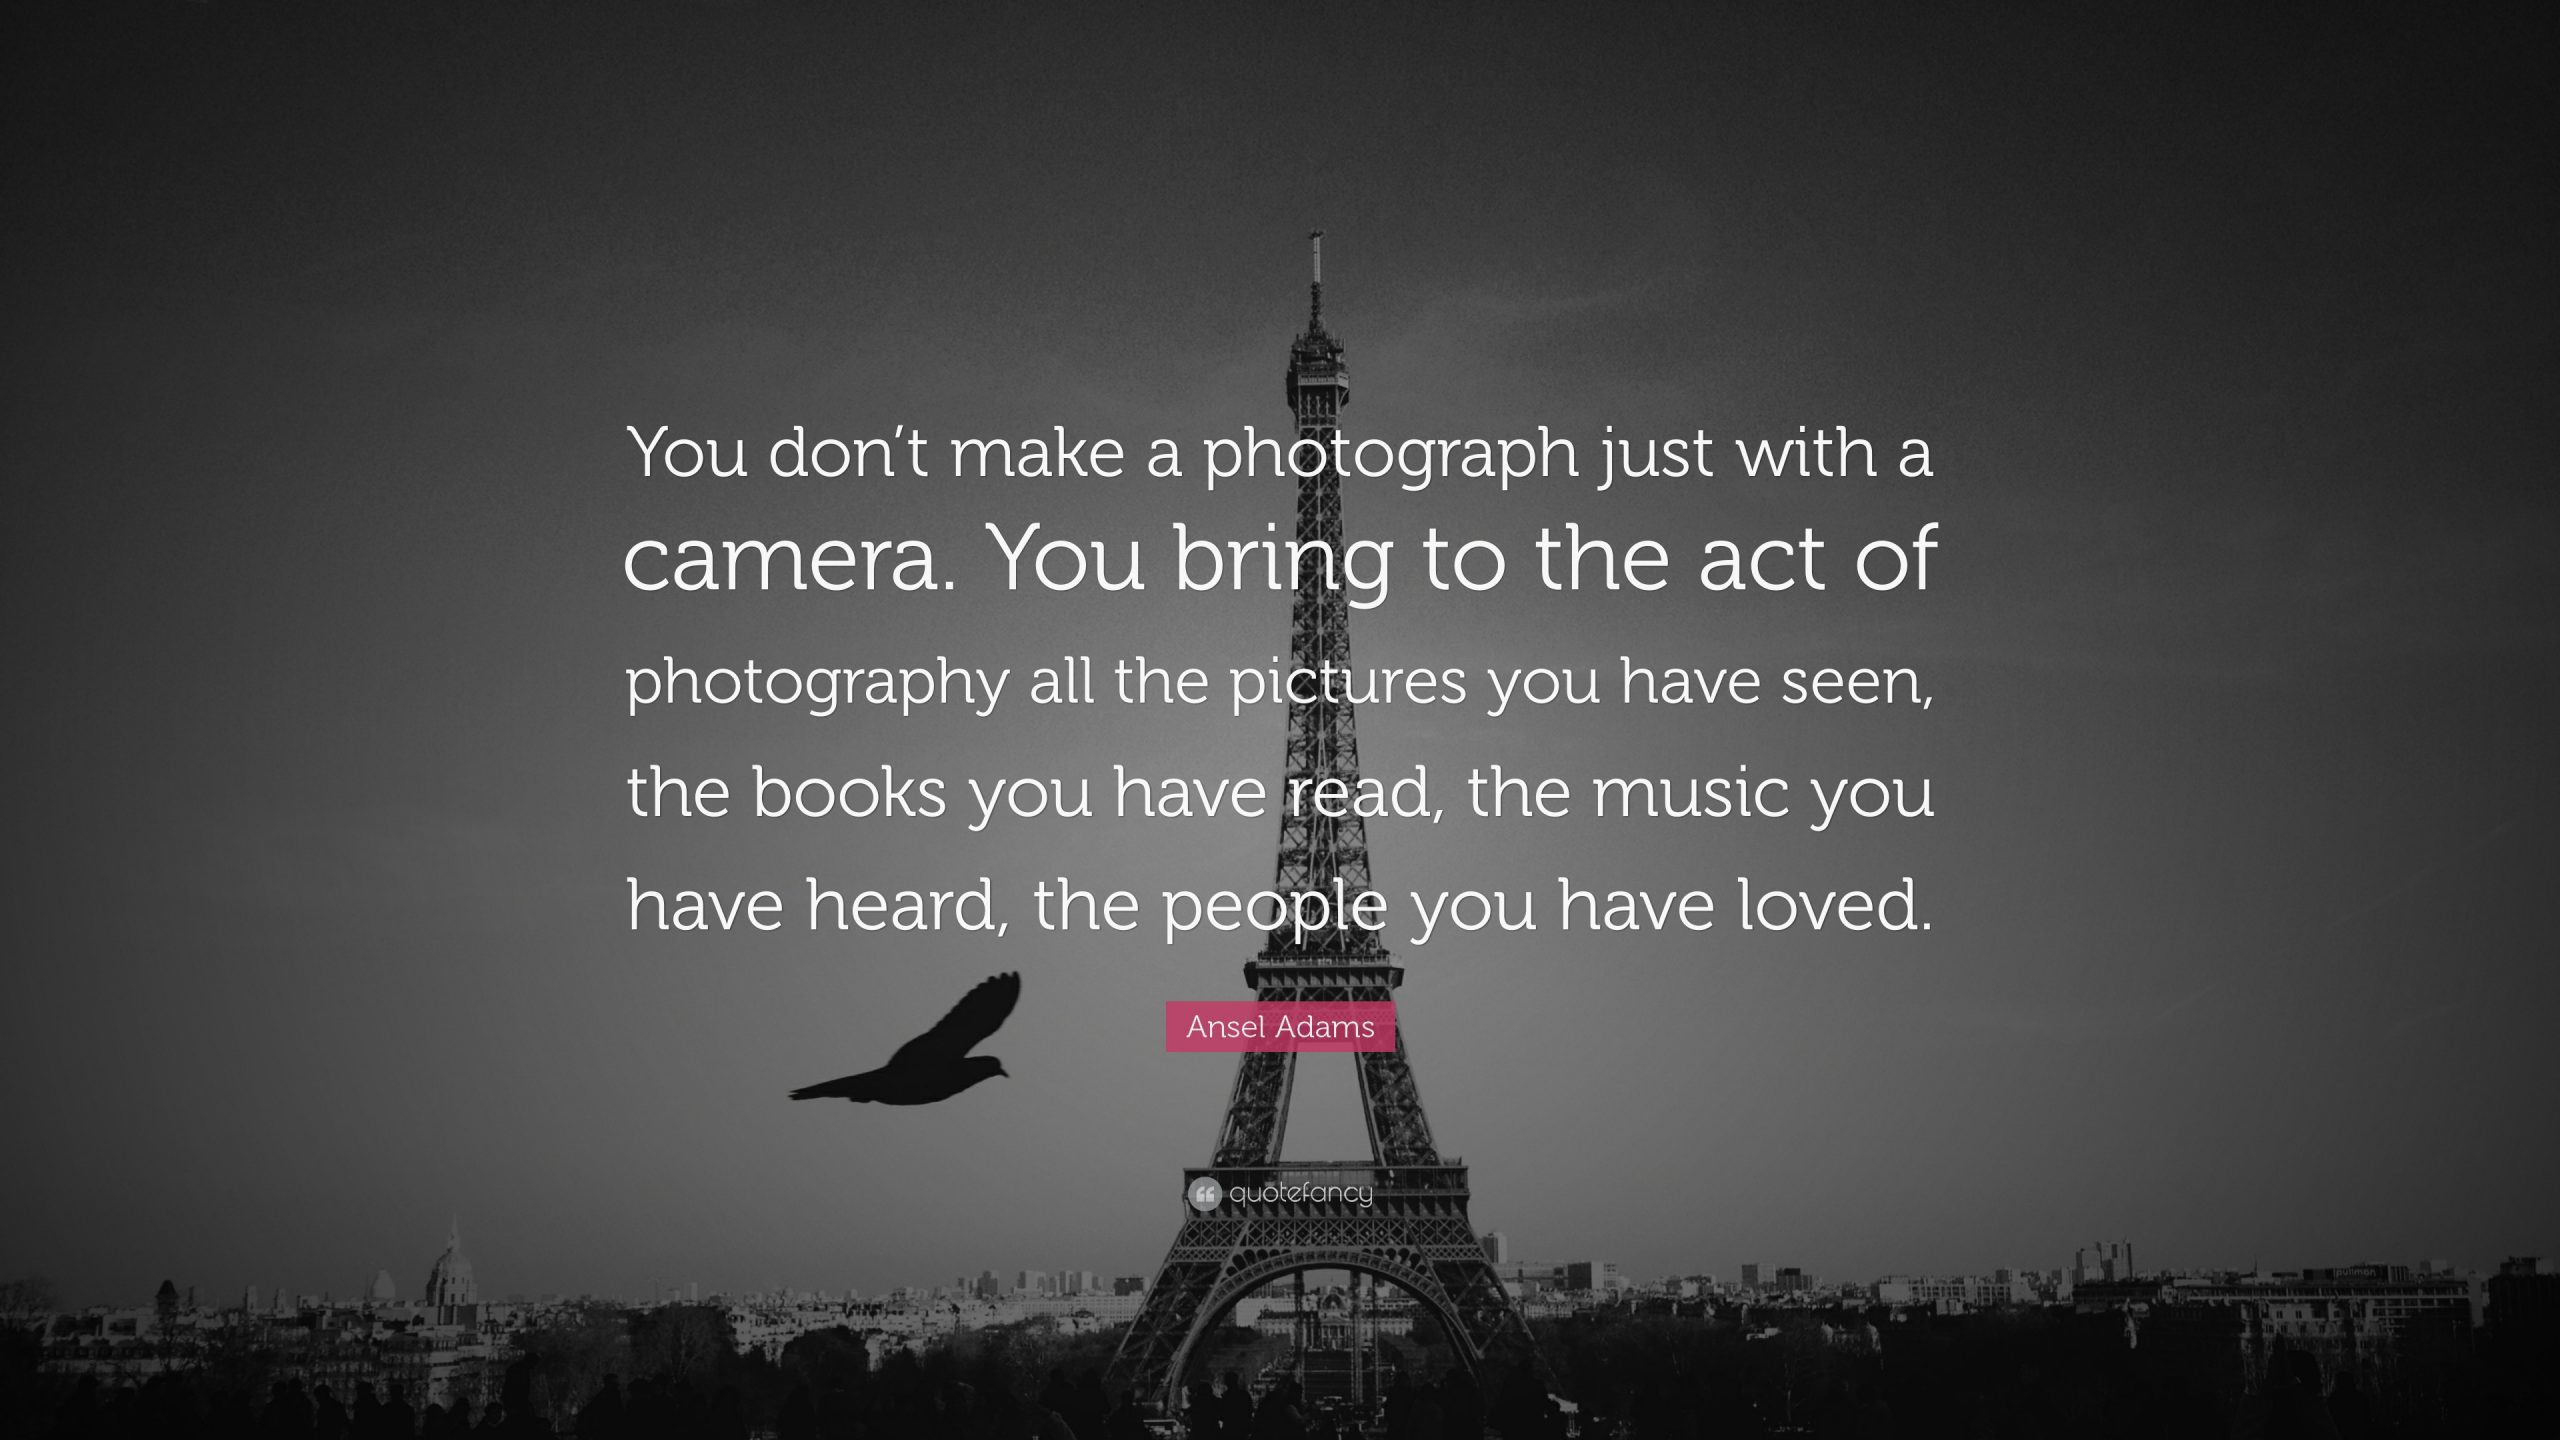 Ansel Adams Quote You don t make a photograph just with a camera